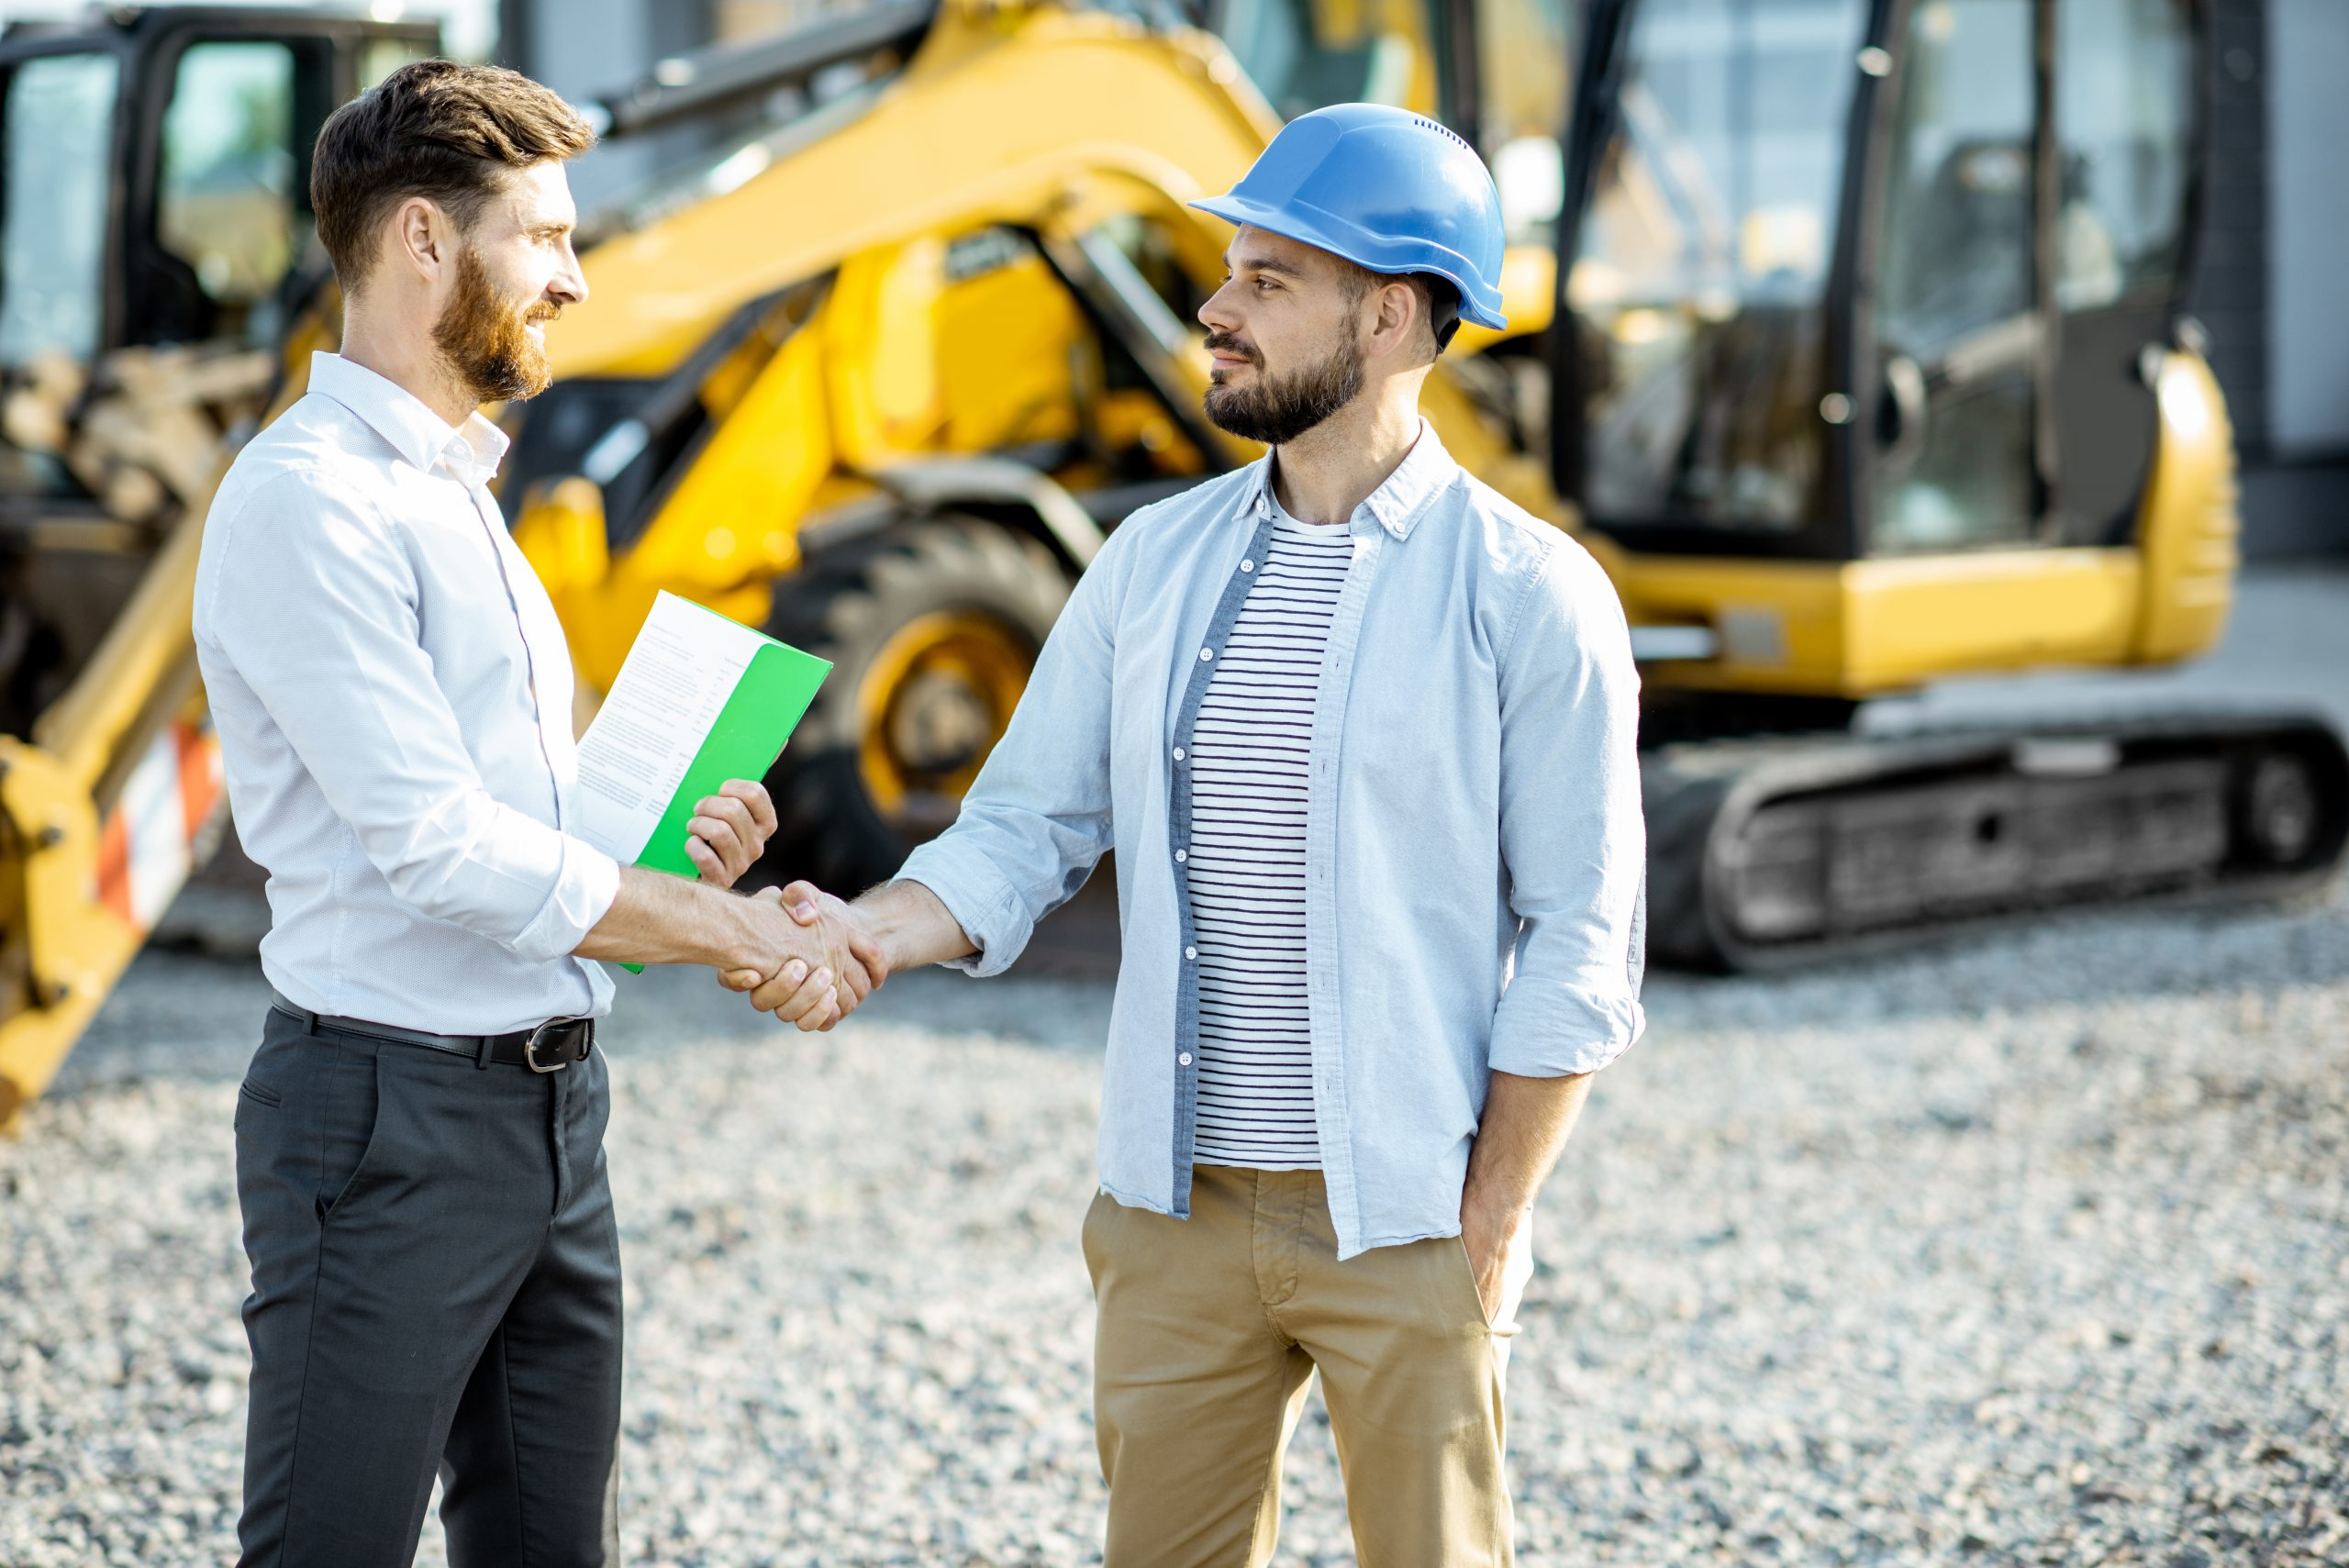 small business owners may avoid working with contractors due to IR35 rules